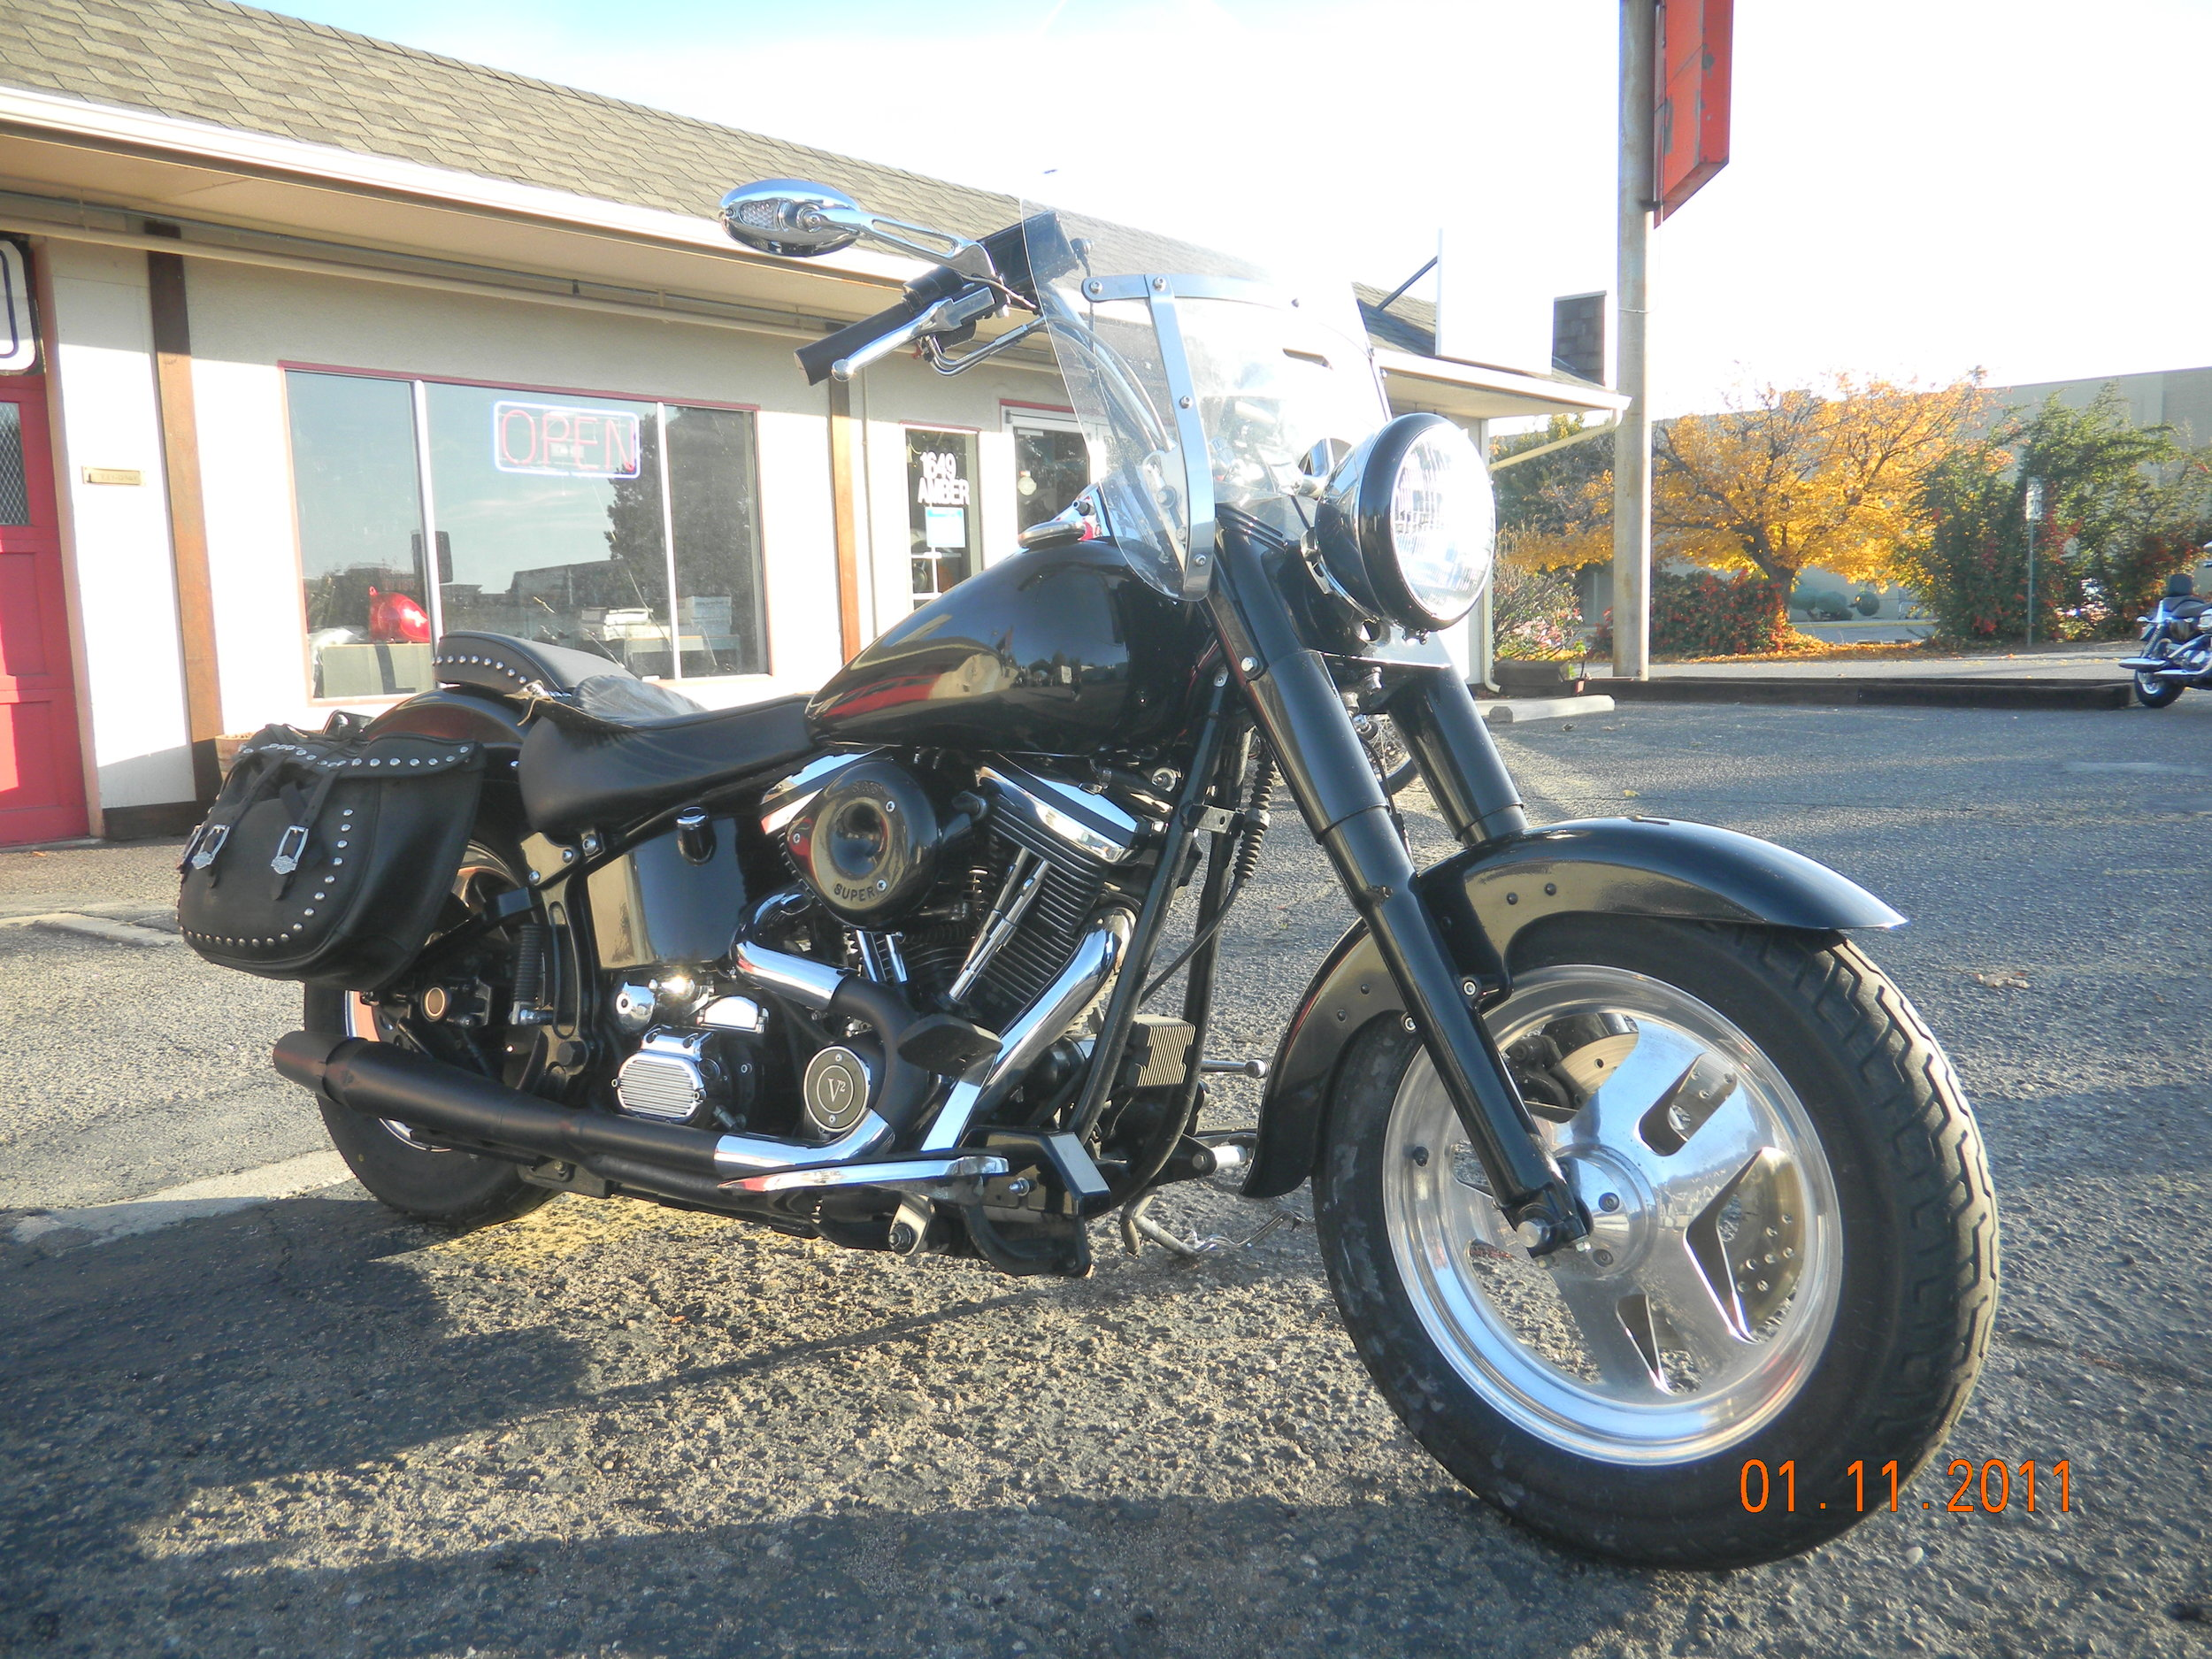 DON'S 1996 HARLEY SOFTAIL